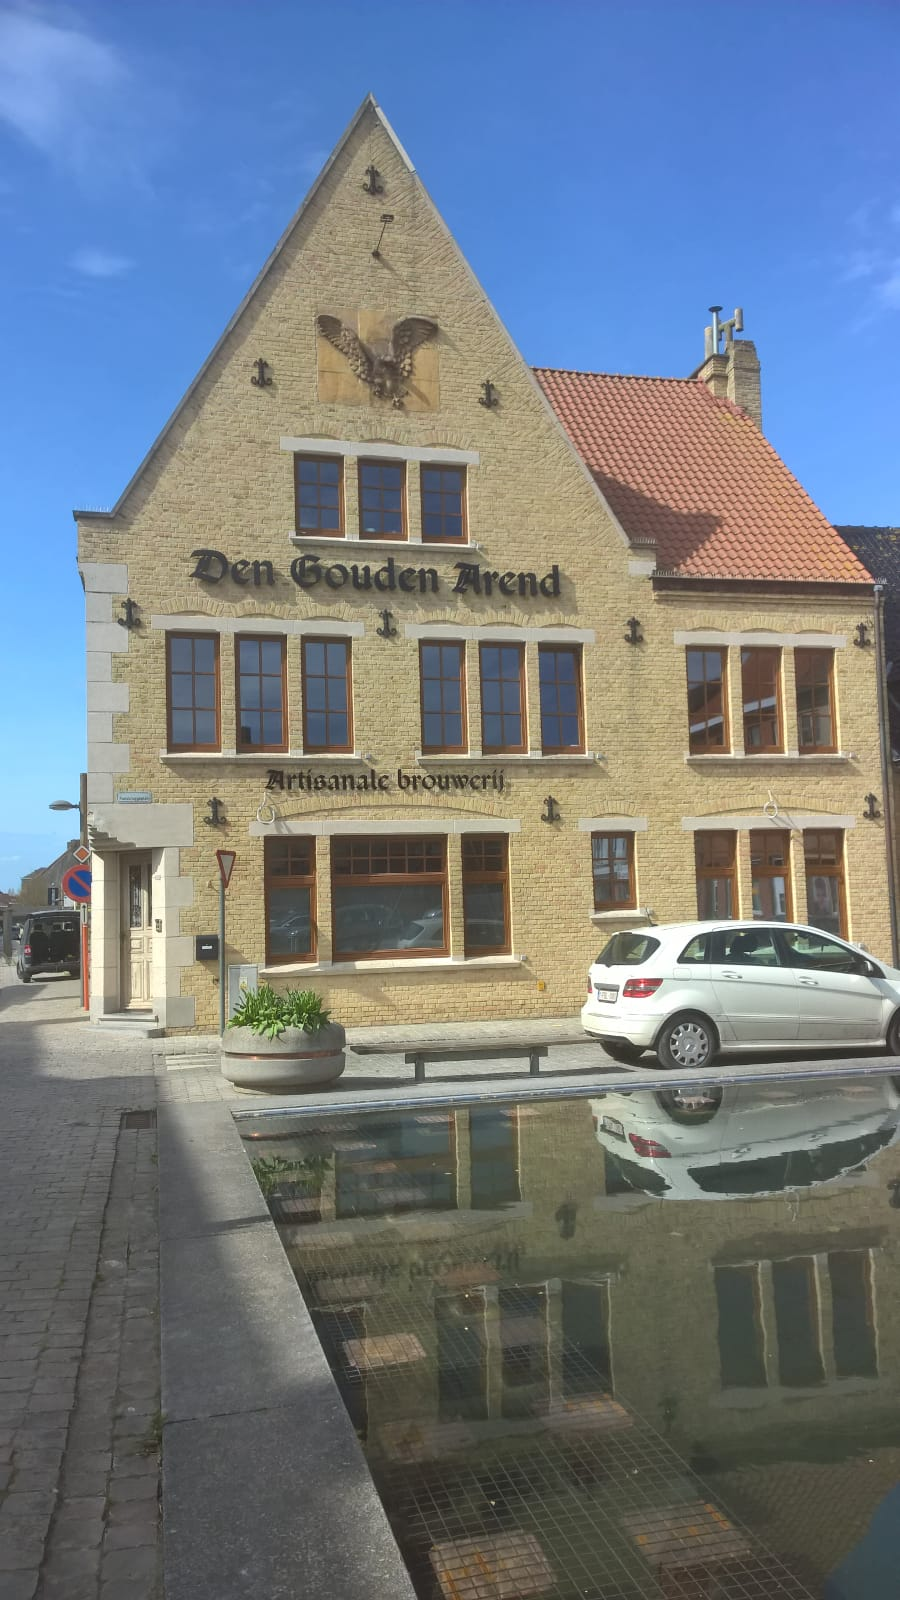 https://www.brouwerij-werbrouck.be/wp-content/uploads/2018/04/Gevel.jpg